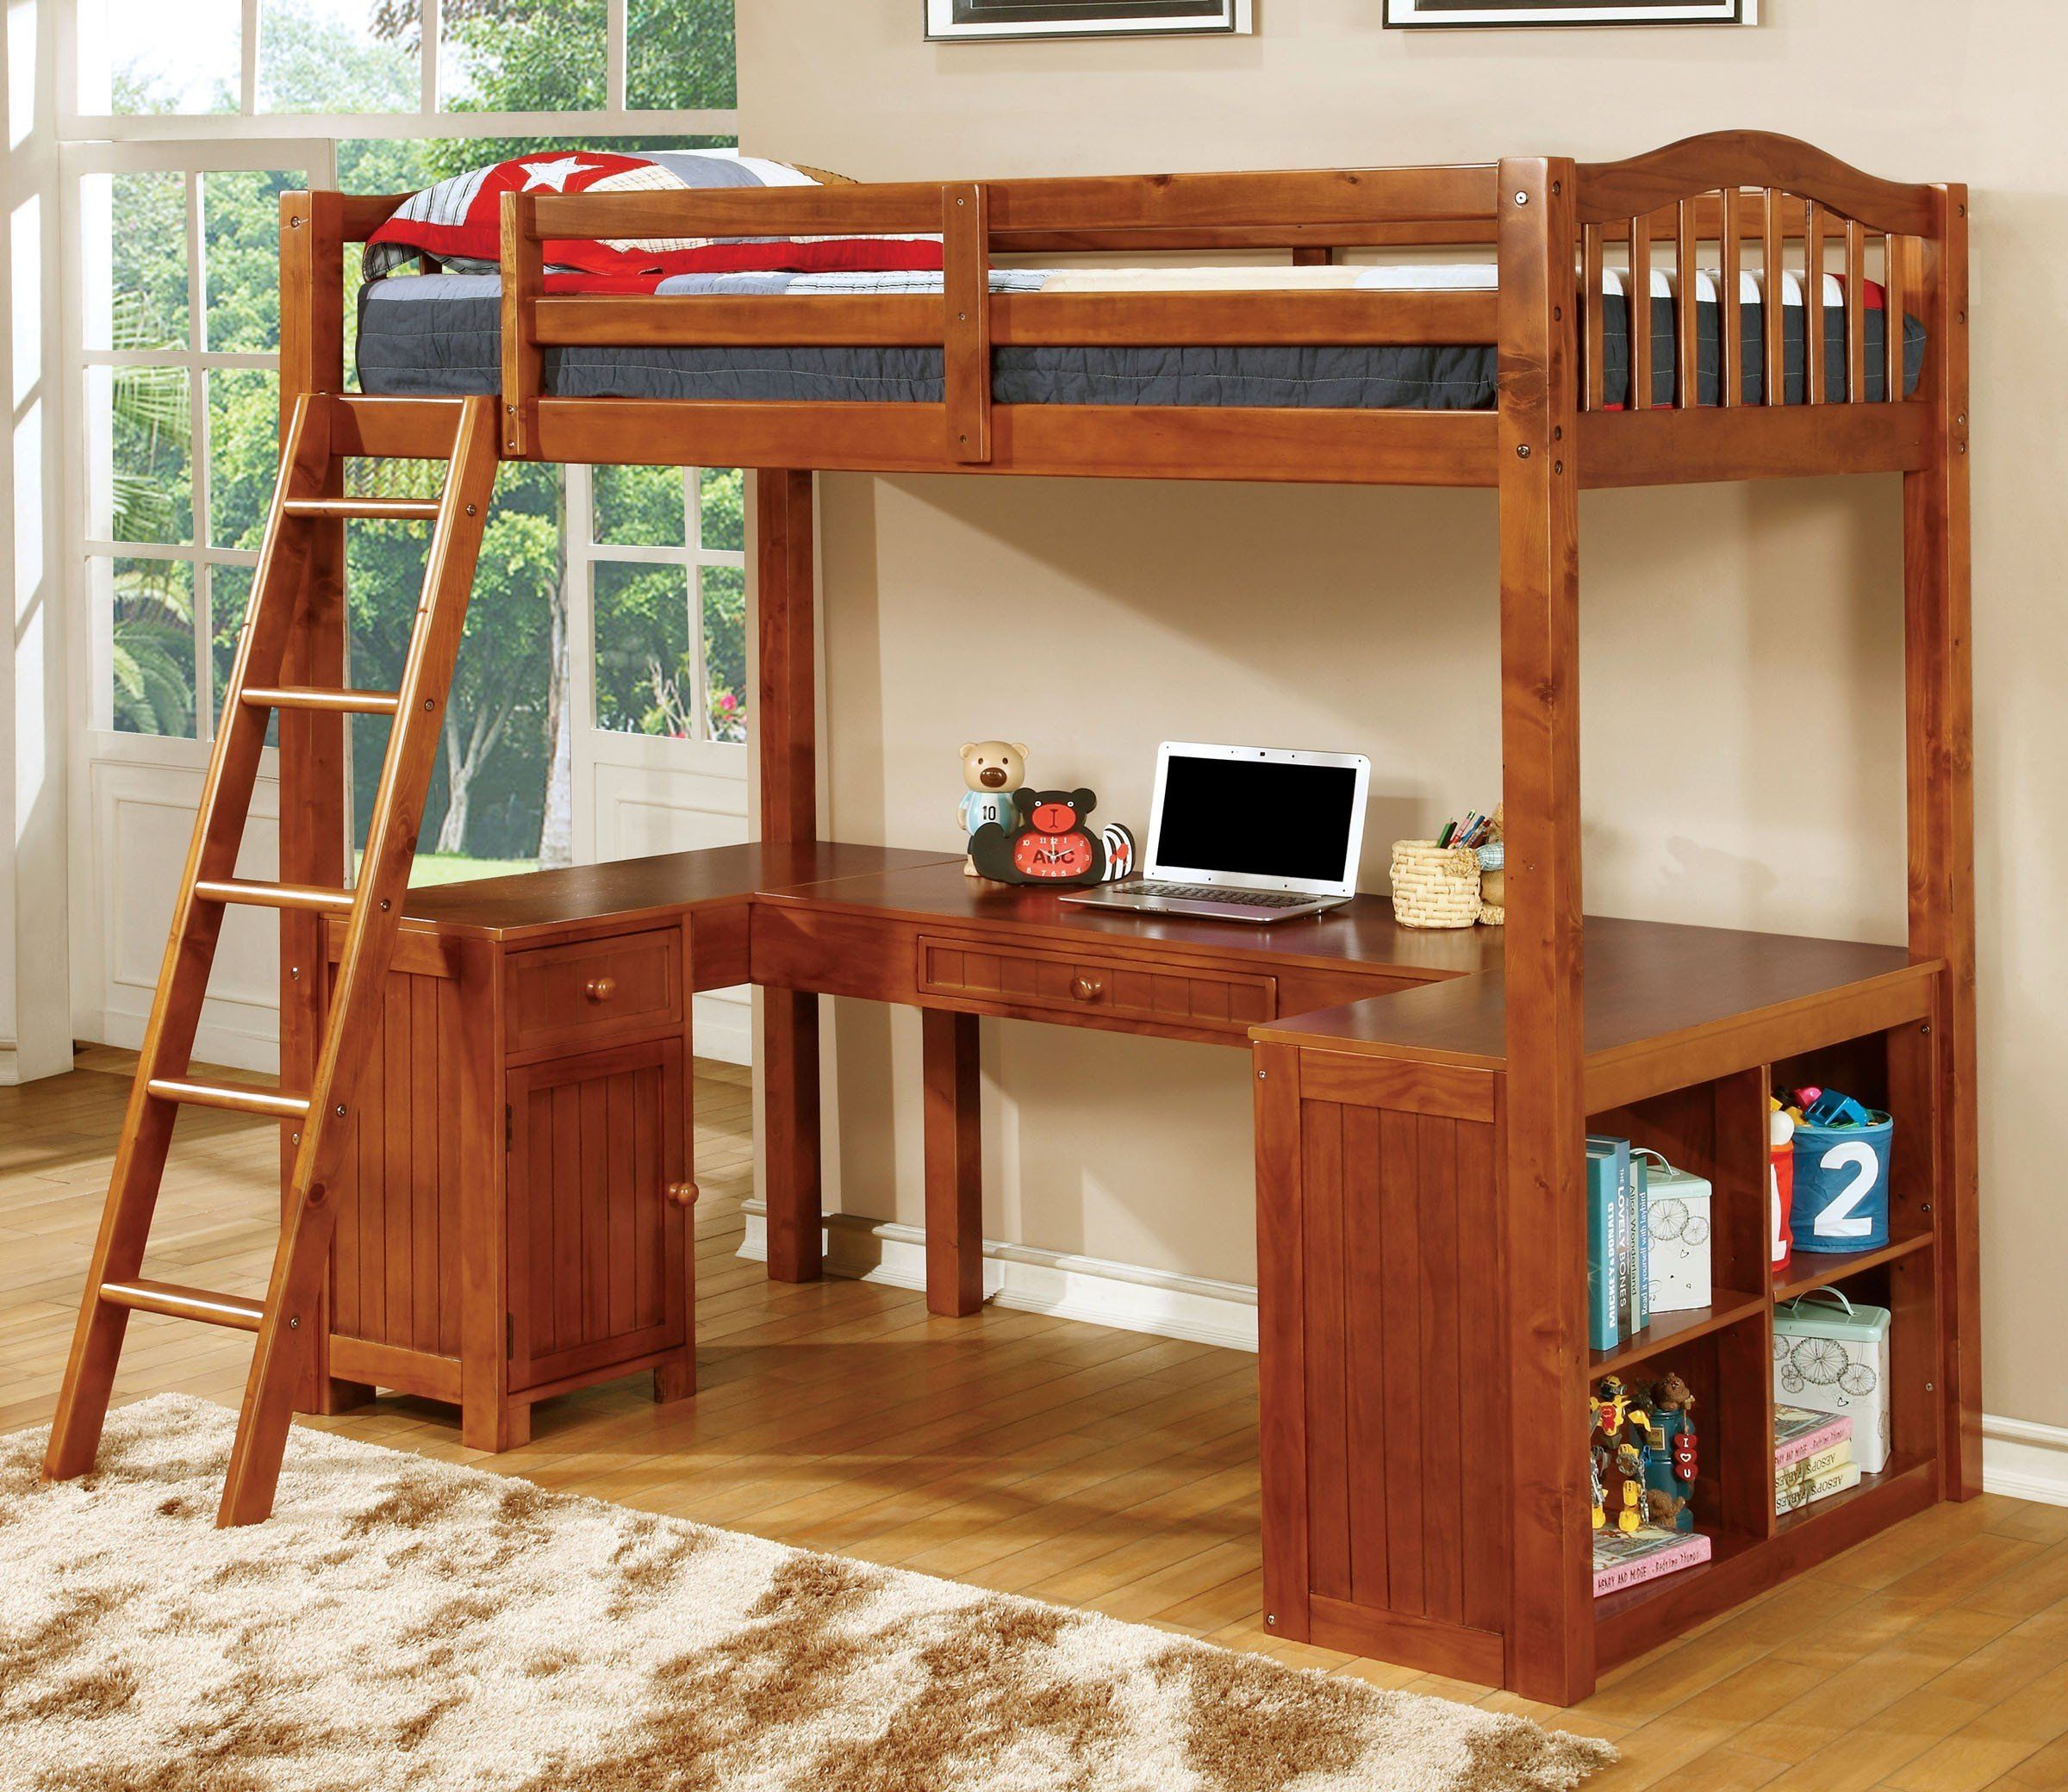 Dutton CMBKA Oak Twin Workstation Loft Bed with BuiltIn Desk